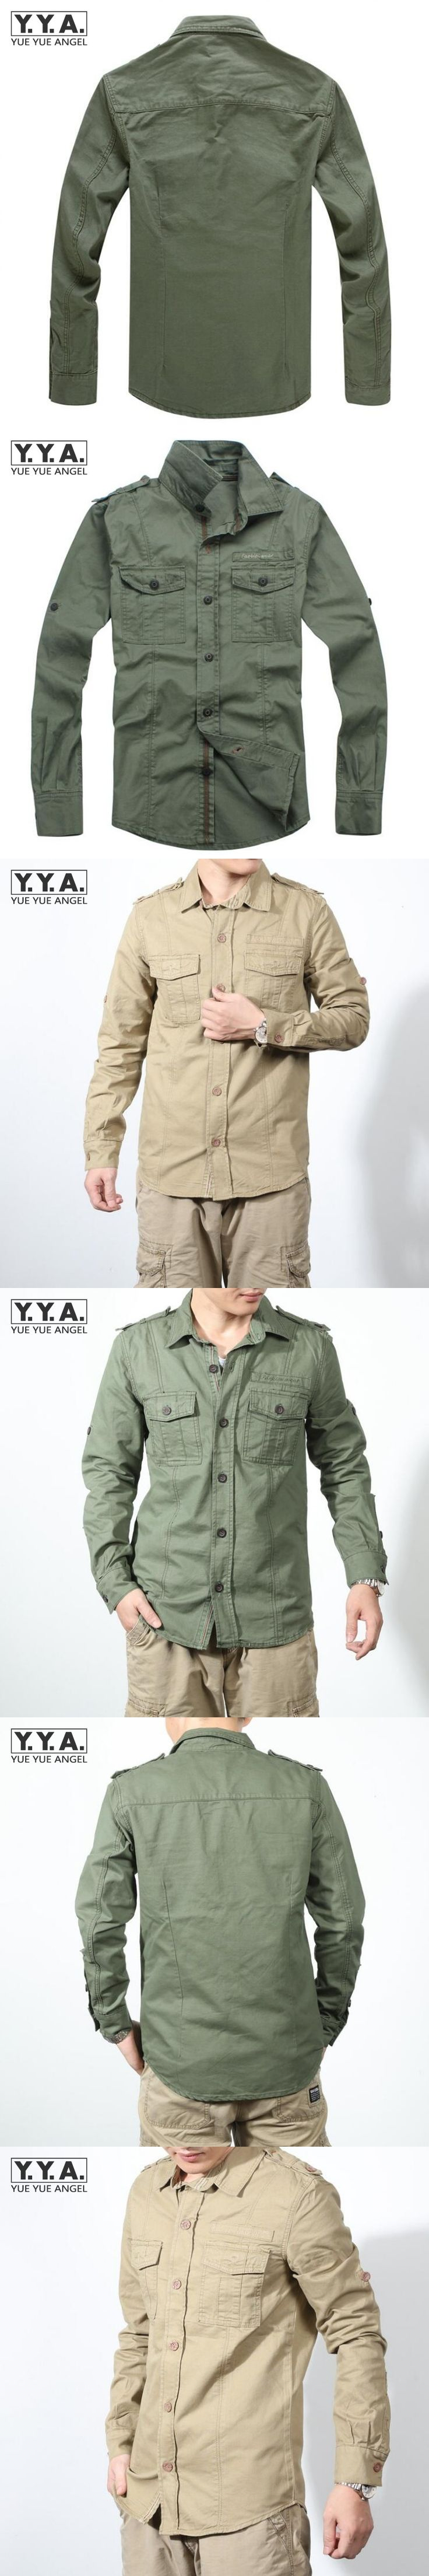 Casual Slim Fit Men's Cotton Khaki Cargo Shirts Jean Military Style Long Sleeve Shirt Multi-Pocket Camisa Masculina Outwear Tops